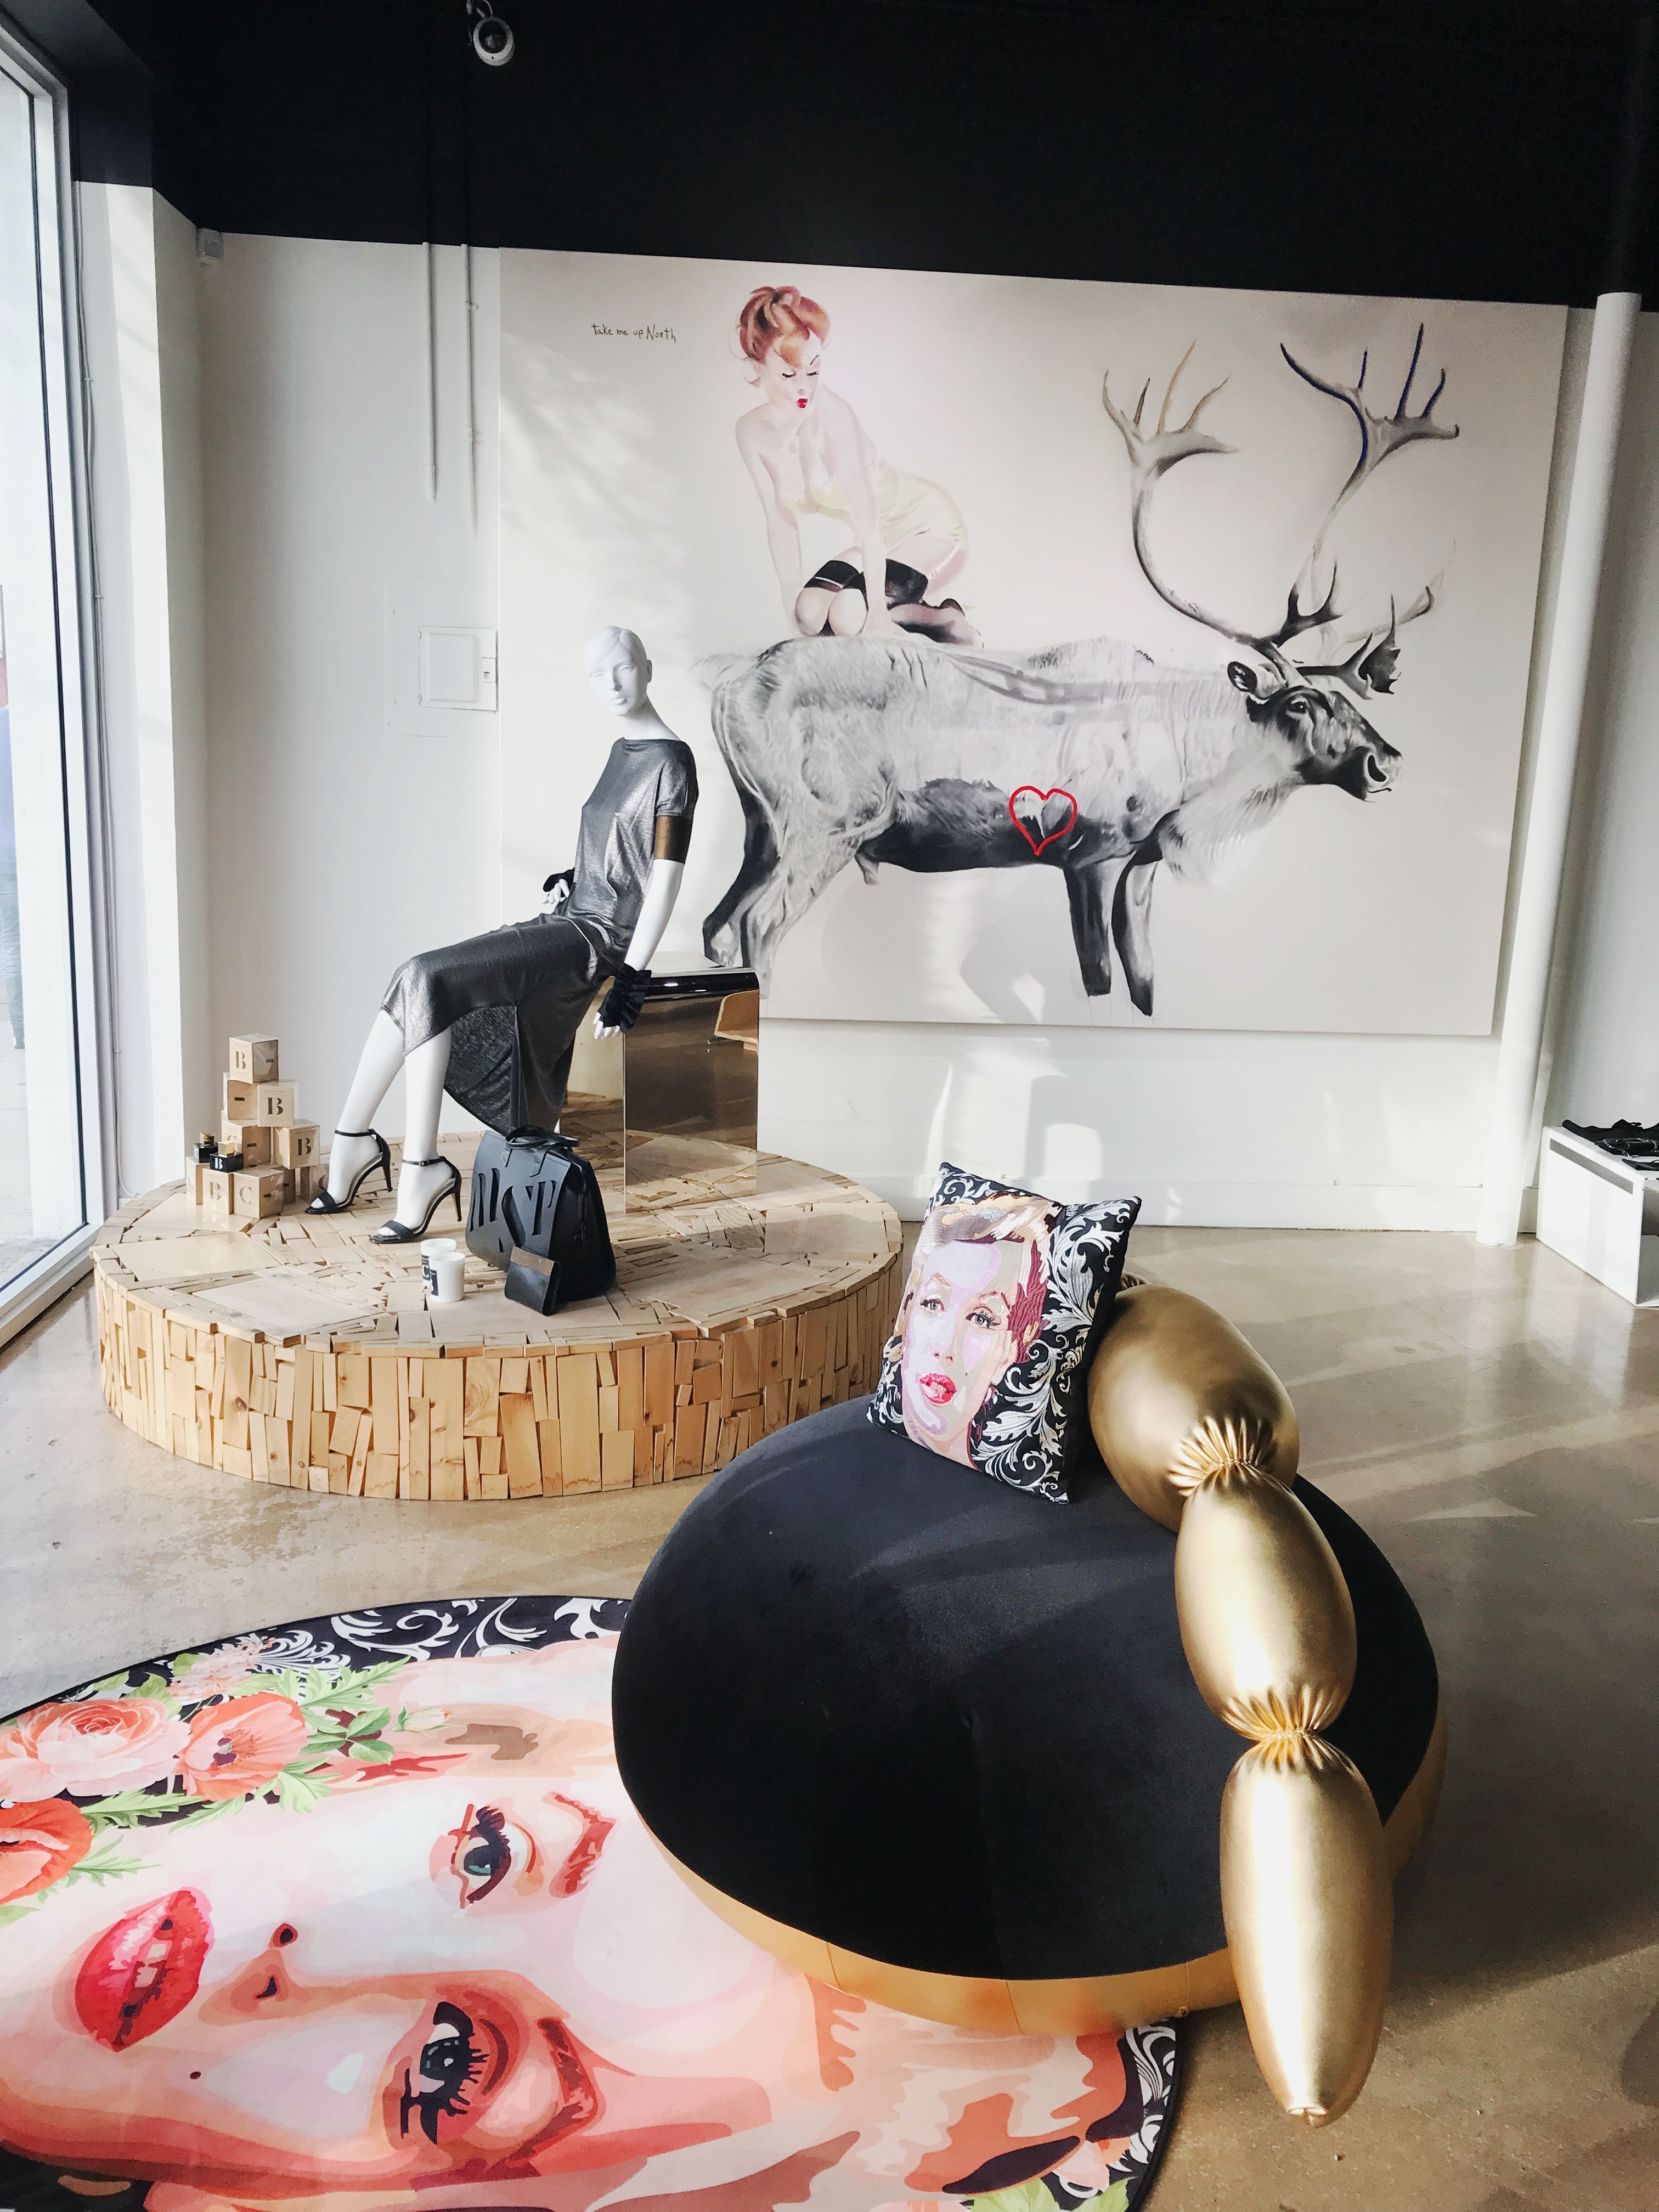 Maison Marie Saint Pierre ready-to-wear collections. A Canadian designer artfully balancing timeless fashion and function. Timeless Fashion, Modern Art, Ottoman, Saints, Museum, Lifestyle, Store, Design, Home Decor